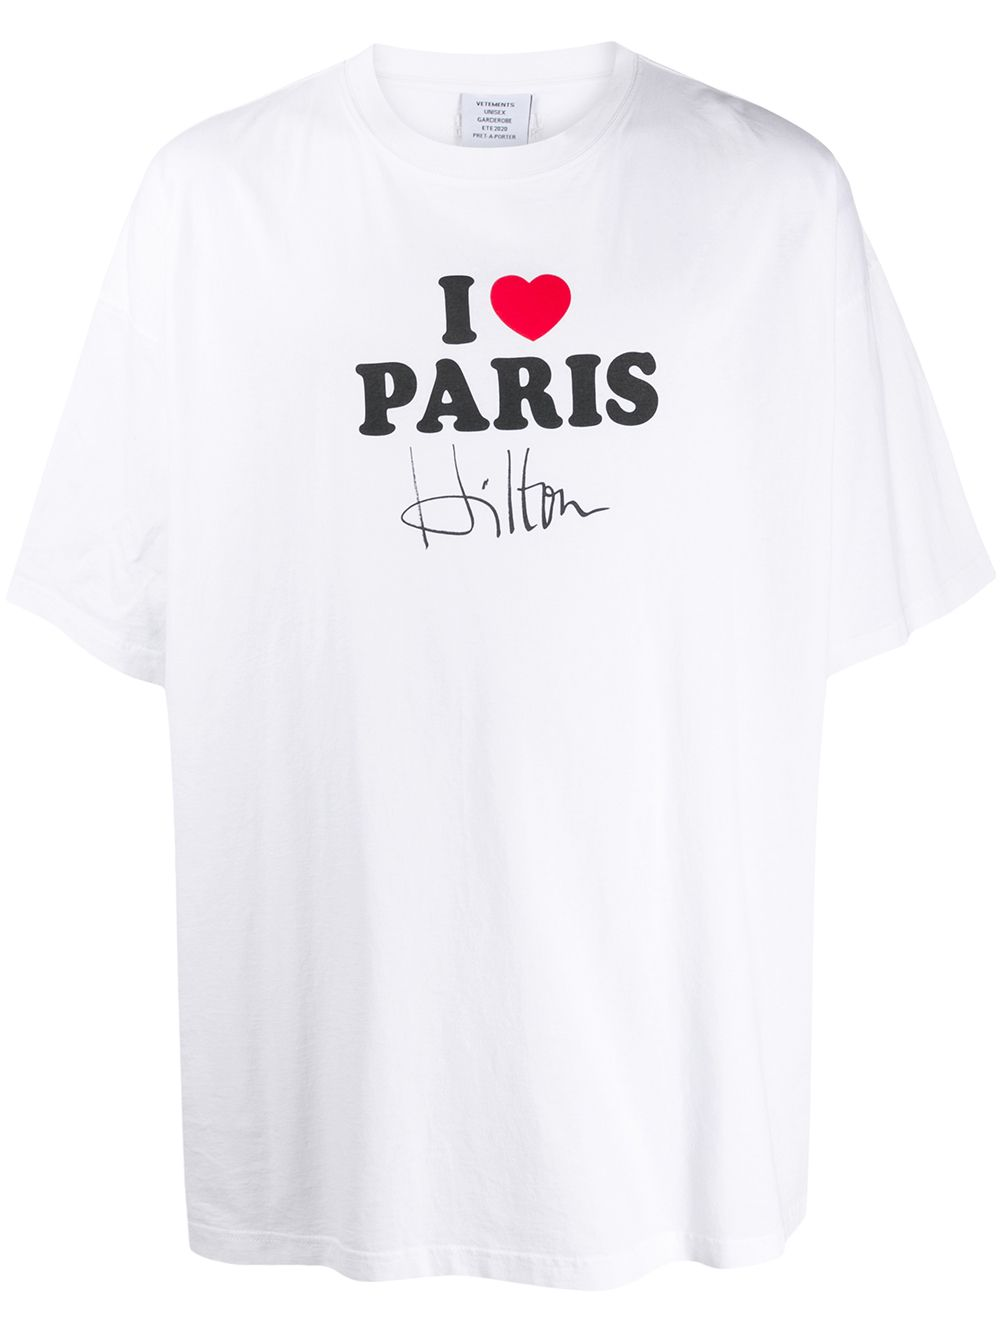 VETEMENTS I love Paris t-shirt white - Maison De Fashion